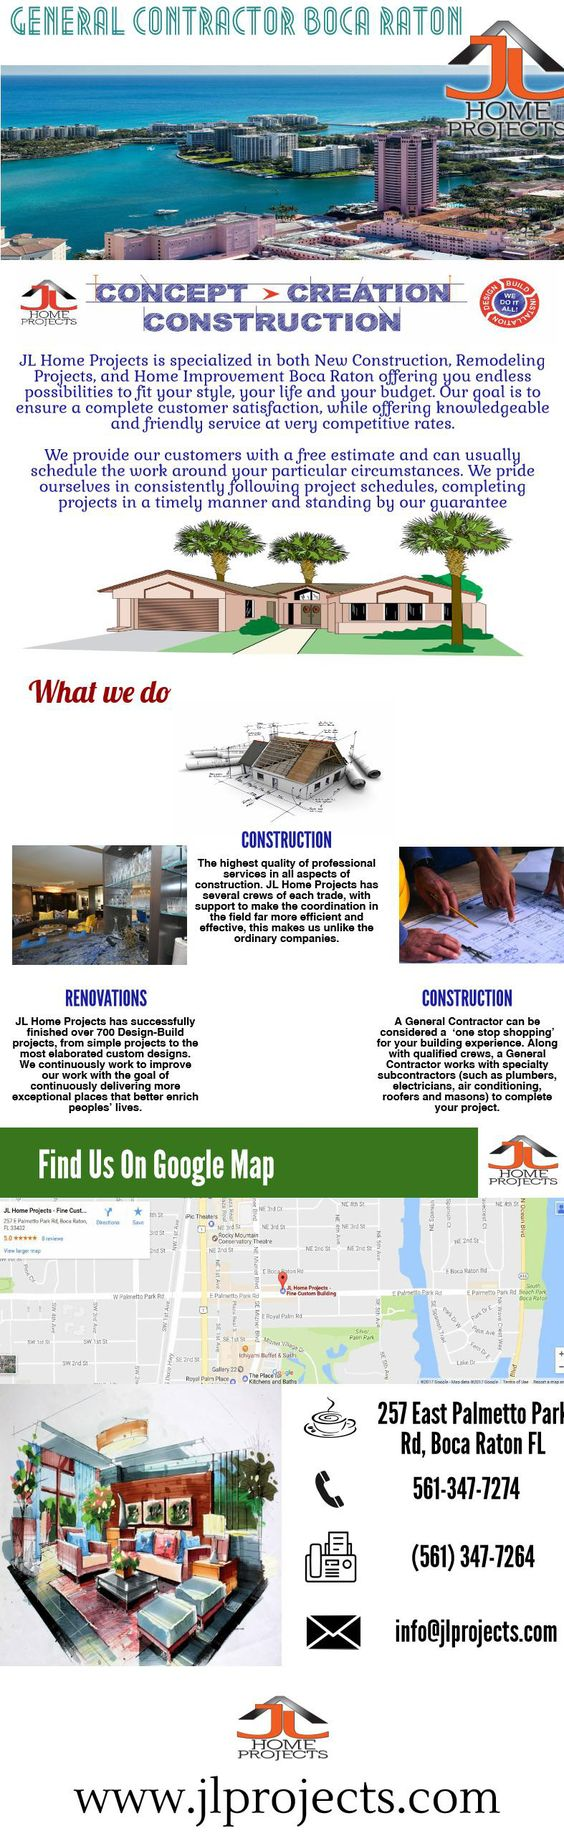 JL Home Project are the best general contractor in Boca Raton ...